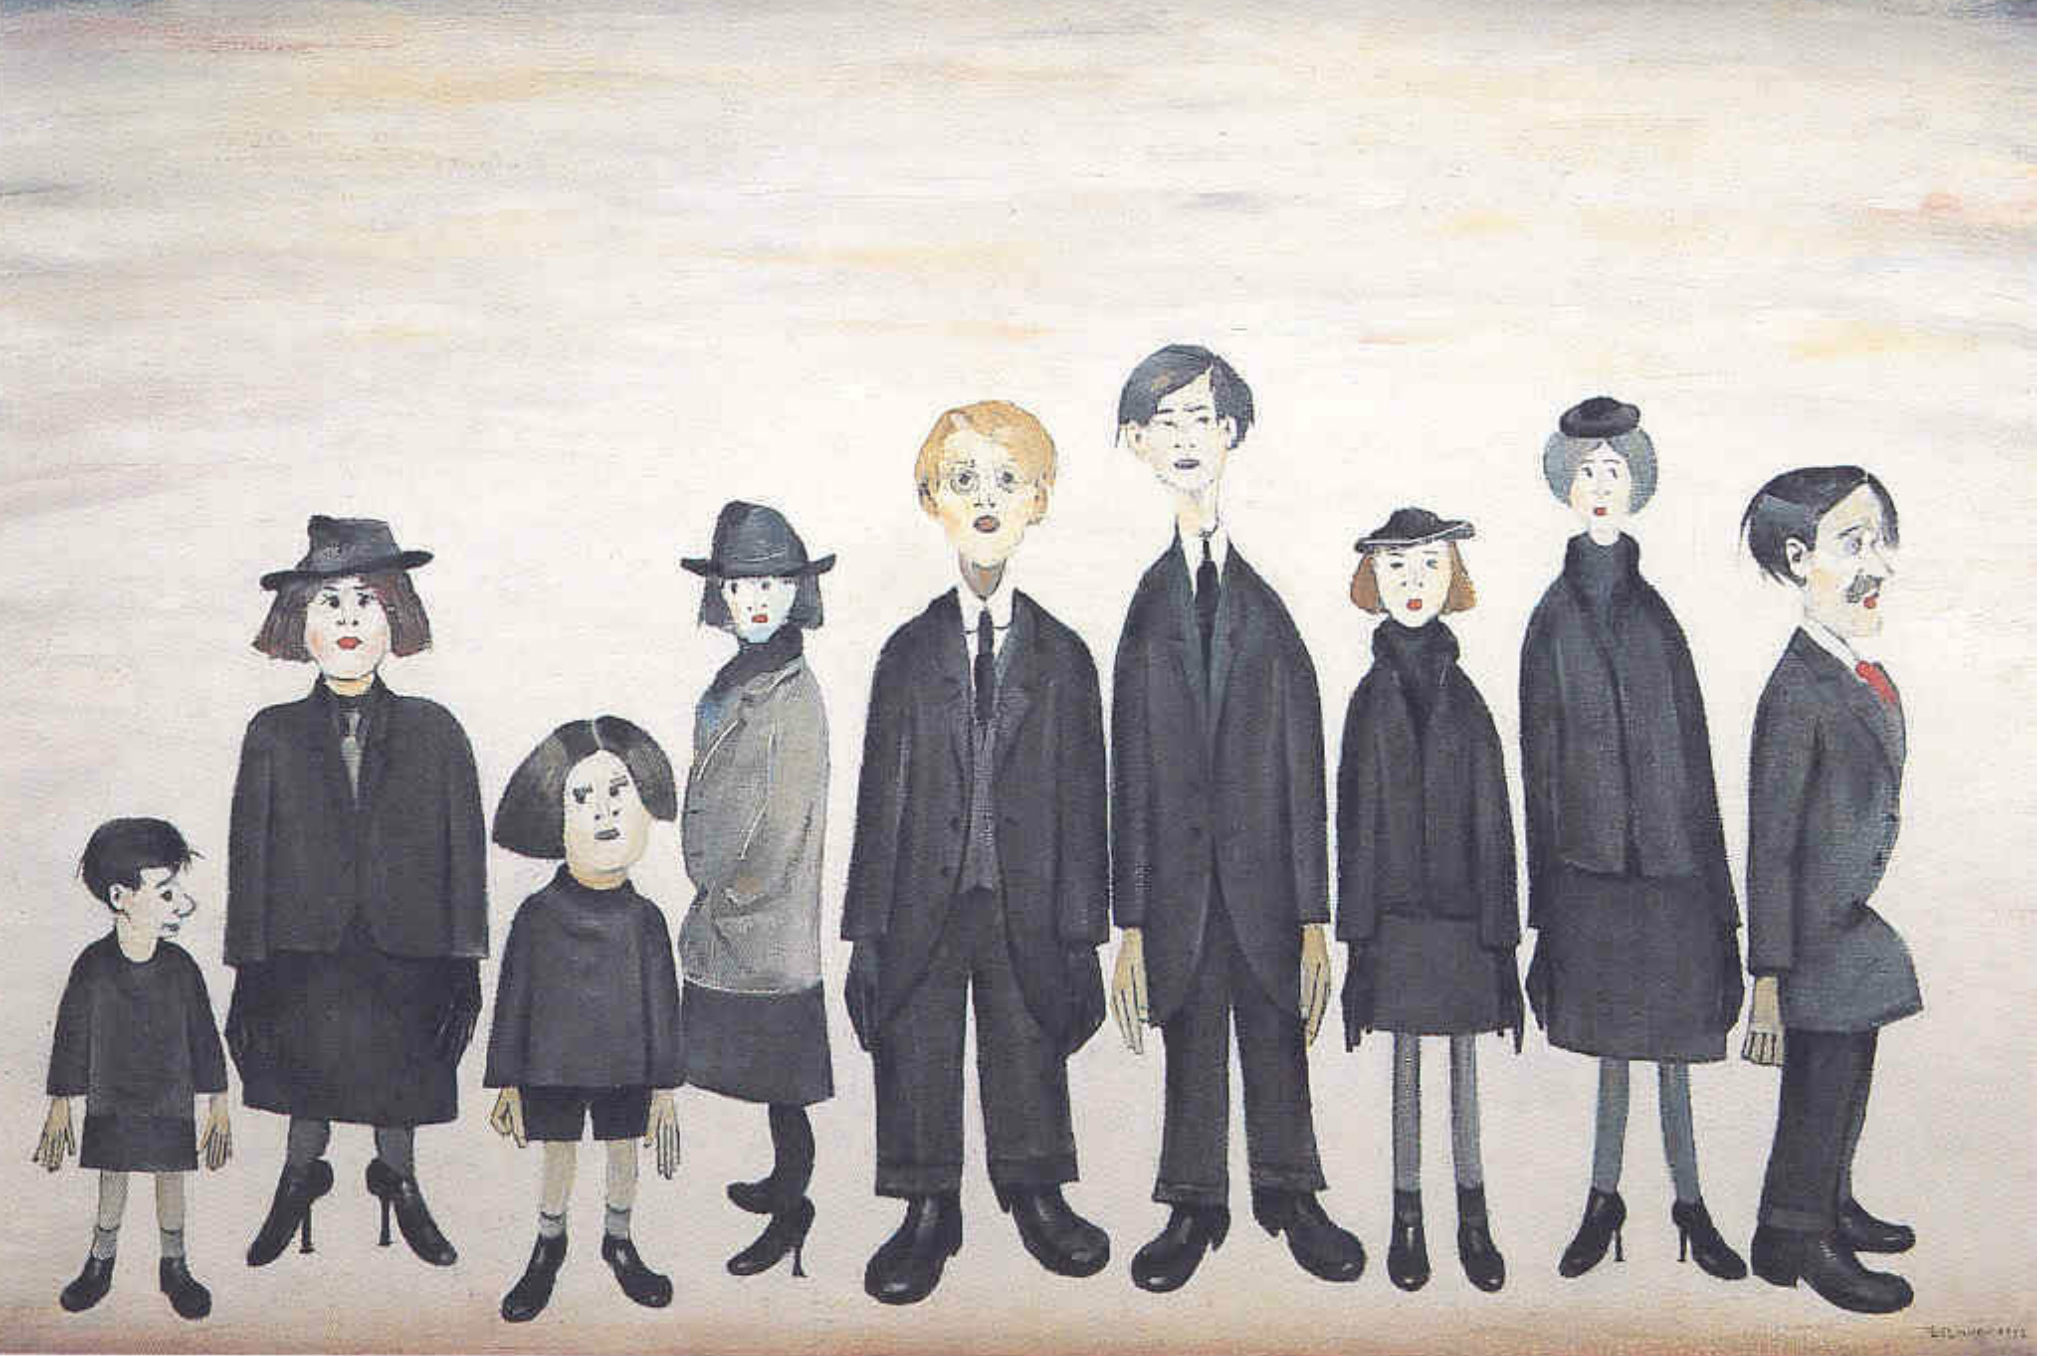 Ten favourite works by LS Lowry